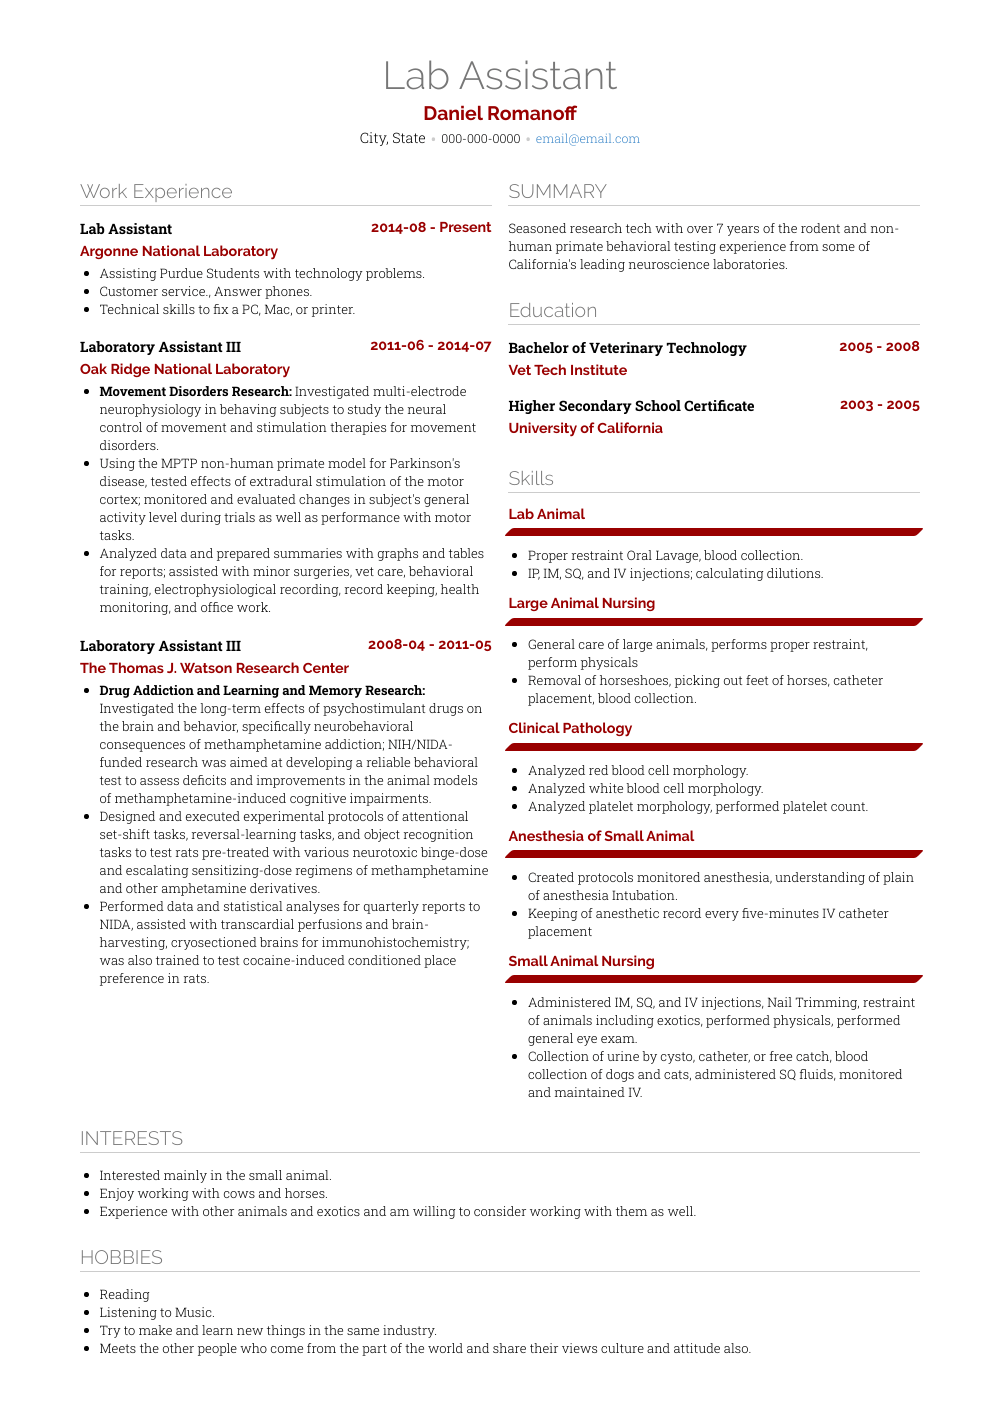 Lab Assistant Resume Sample and Template